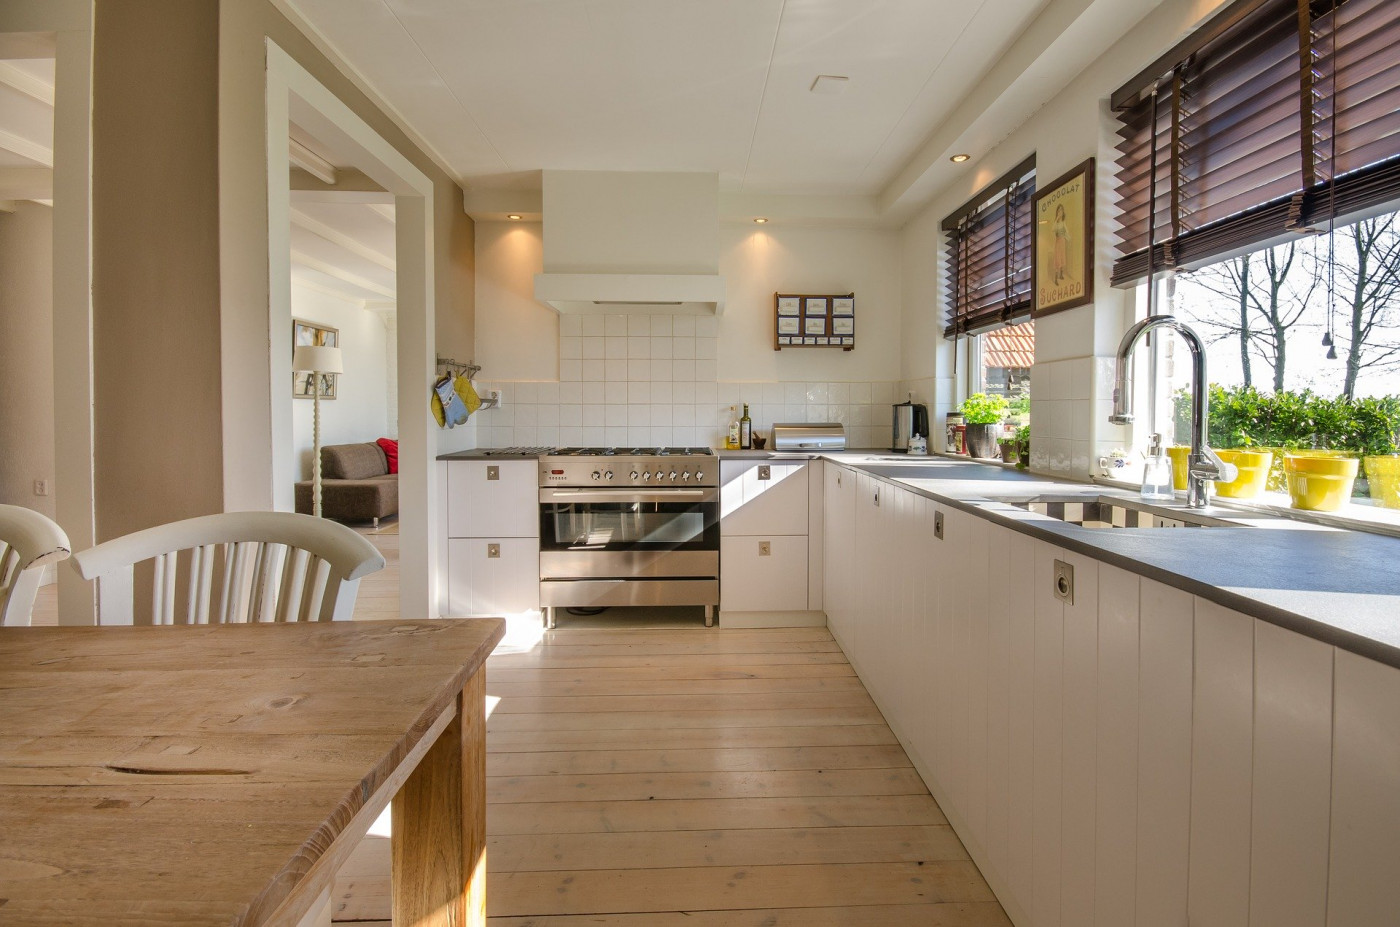 10 Things to Know Before Beginning Your Kitchen Remodel